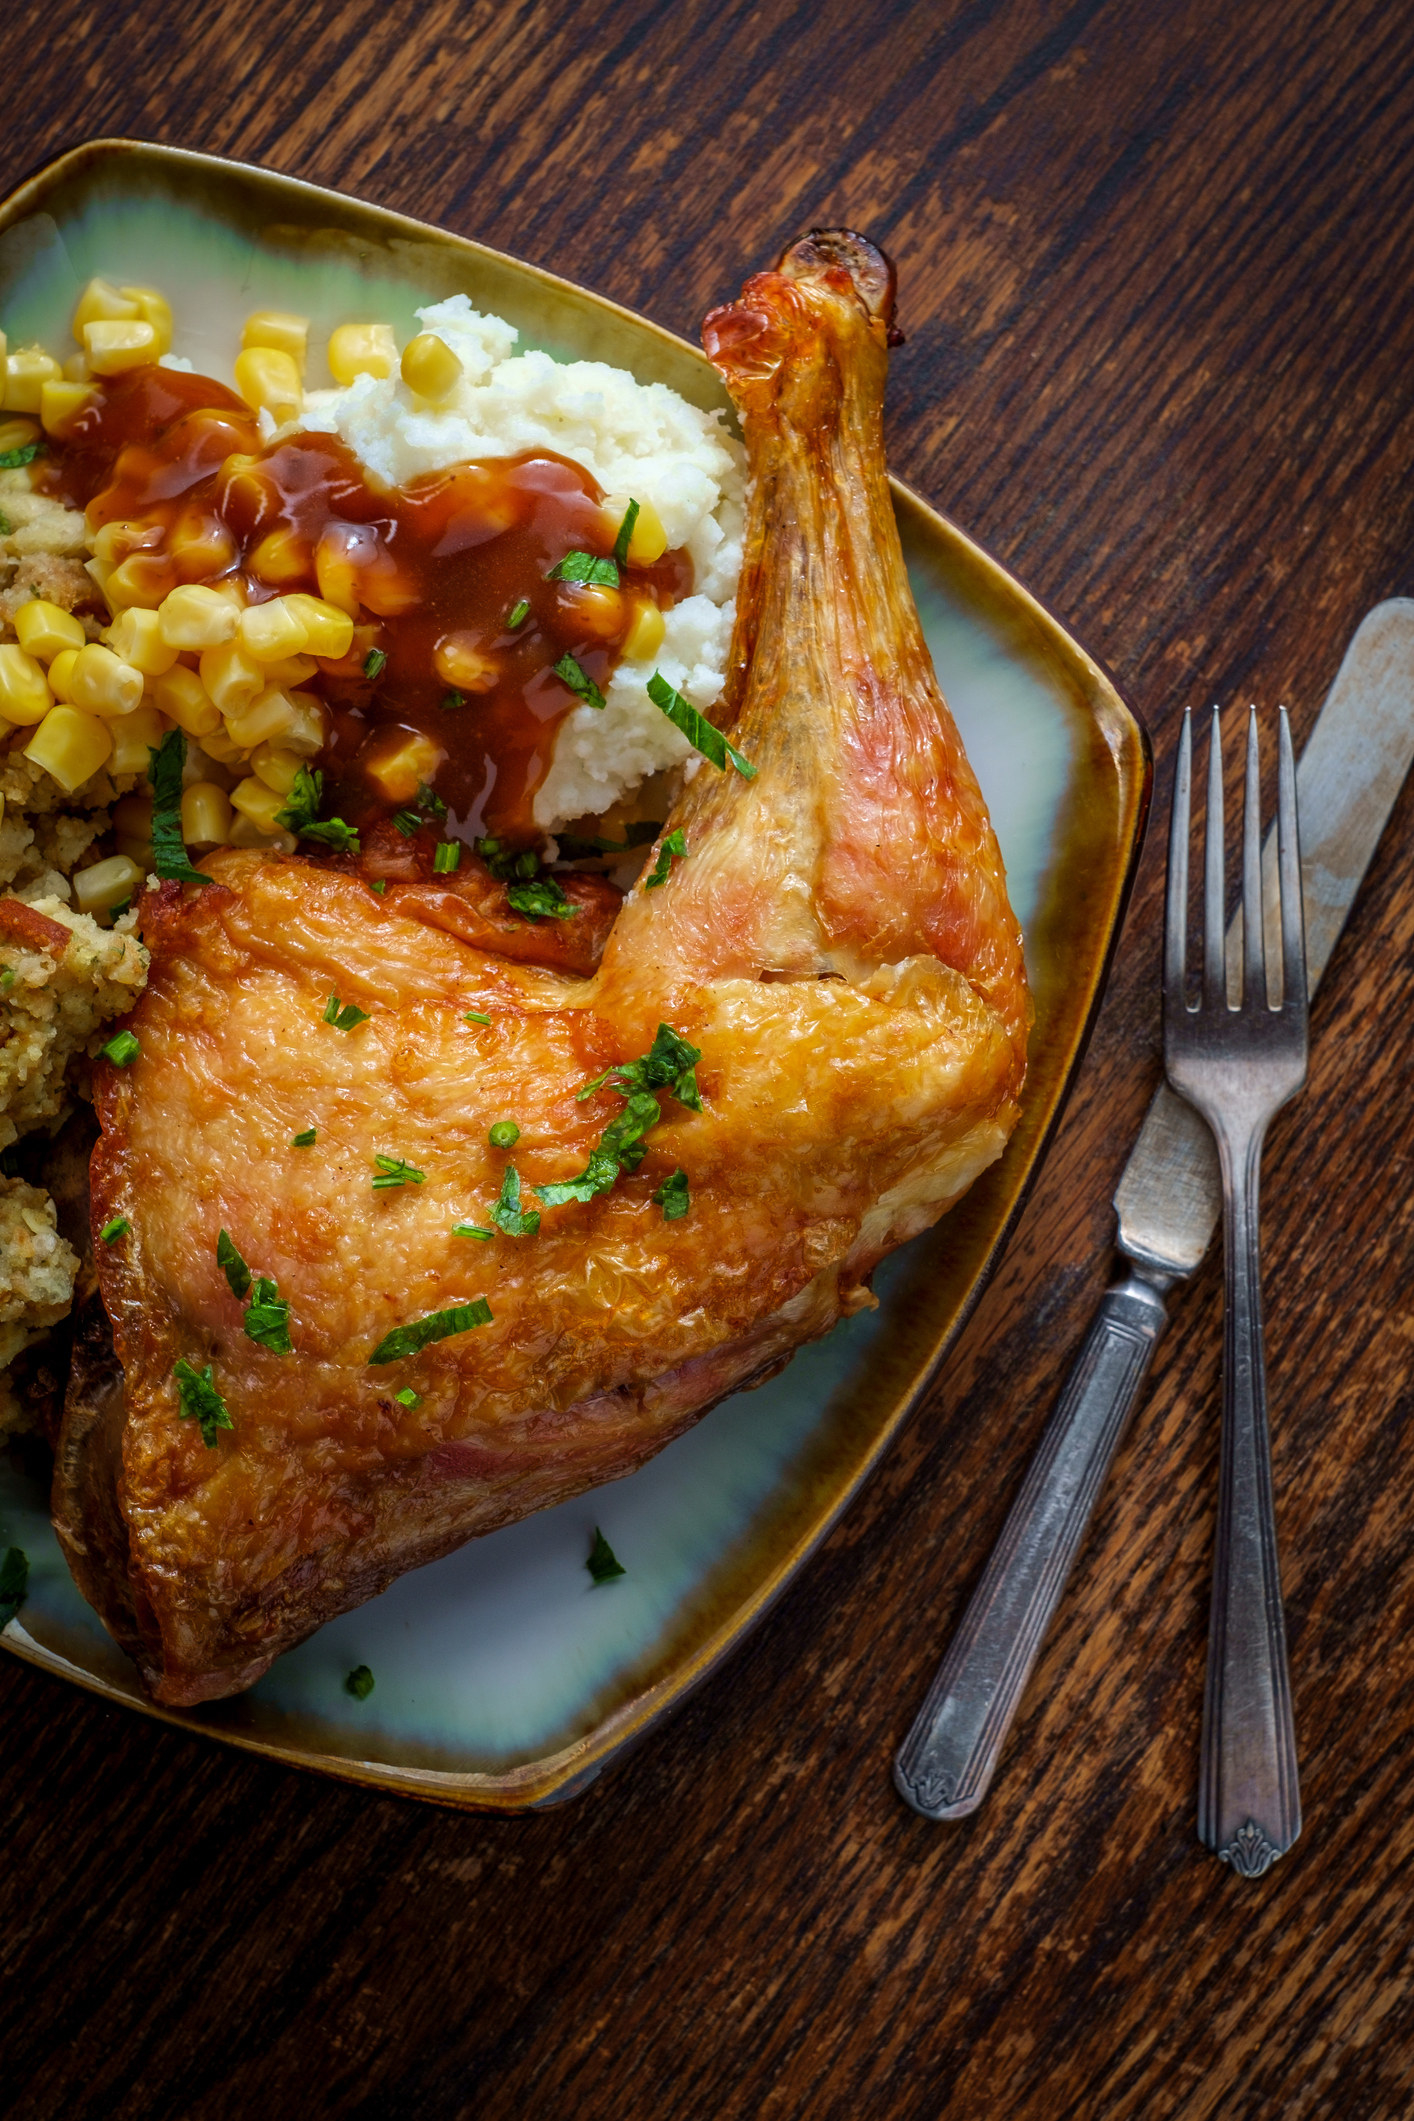 A crispy chicken leg on a plate with mashed potatoes and corn